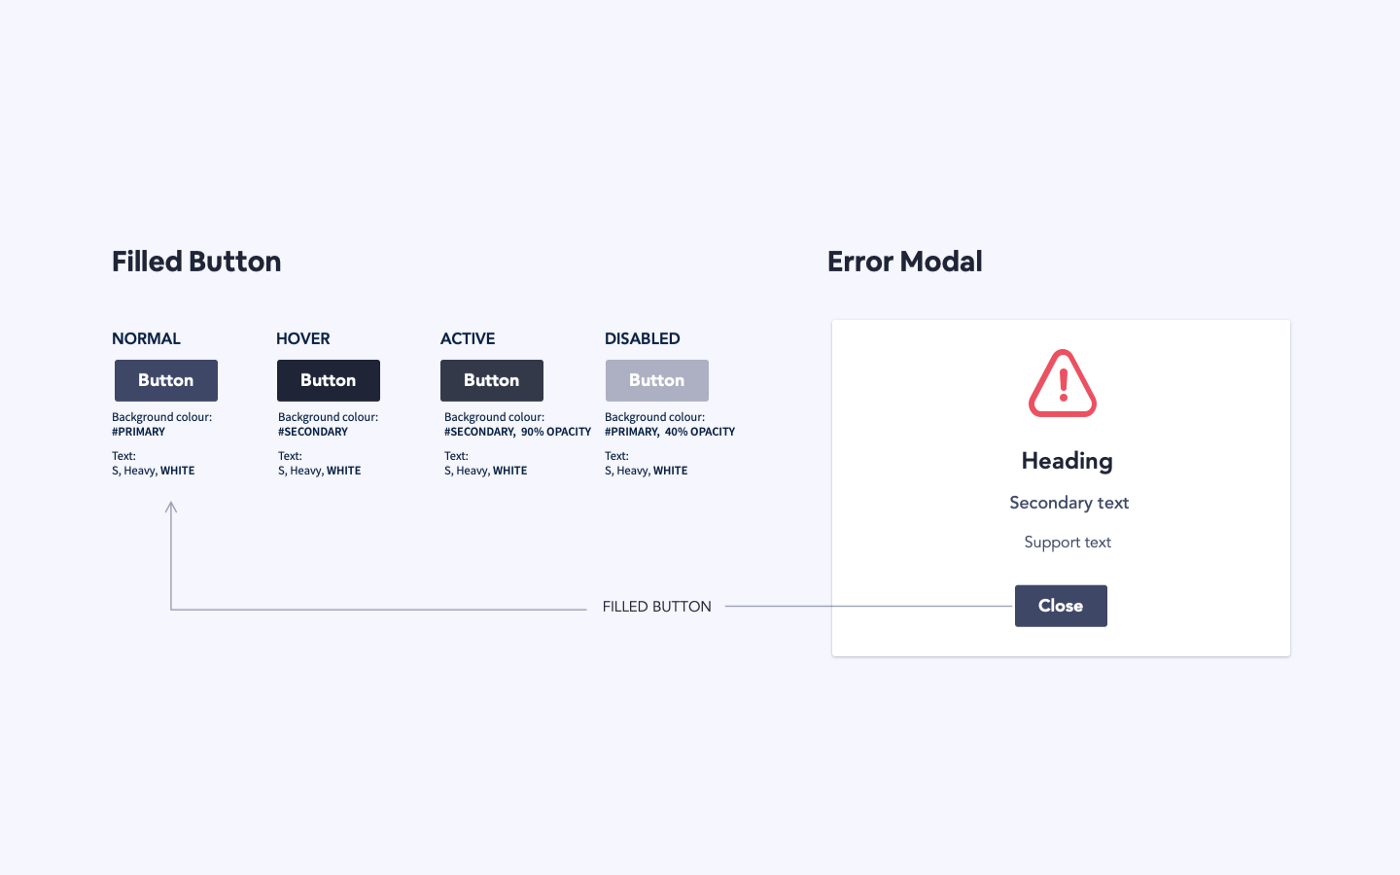 Example showing button components used in error modal